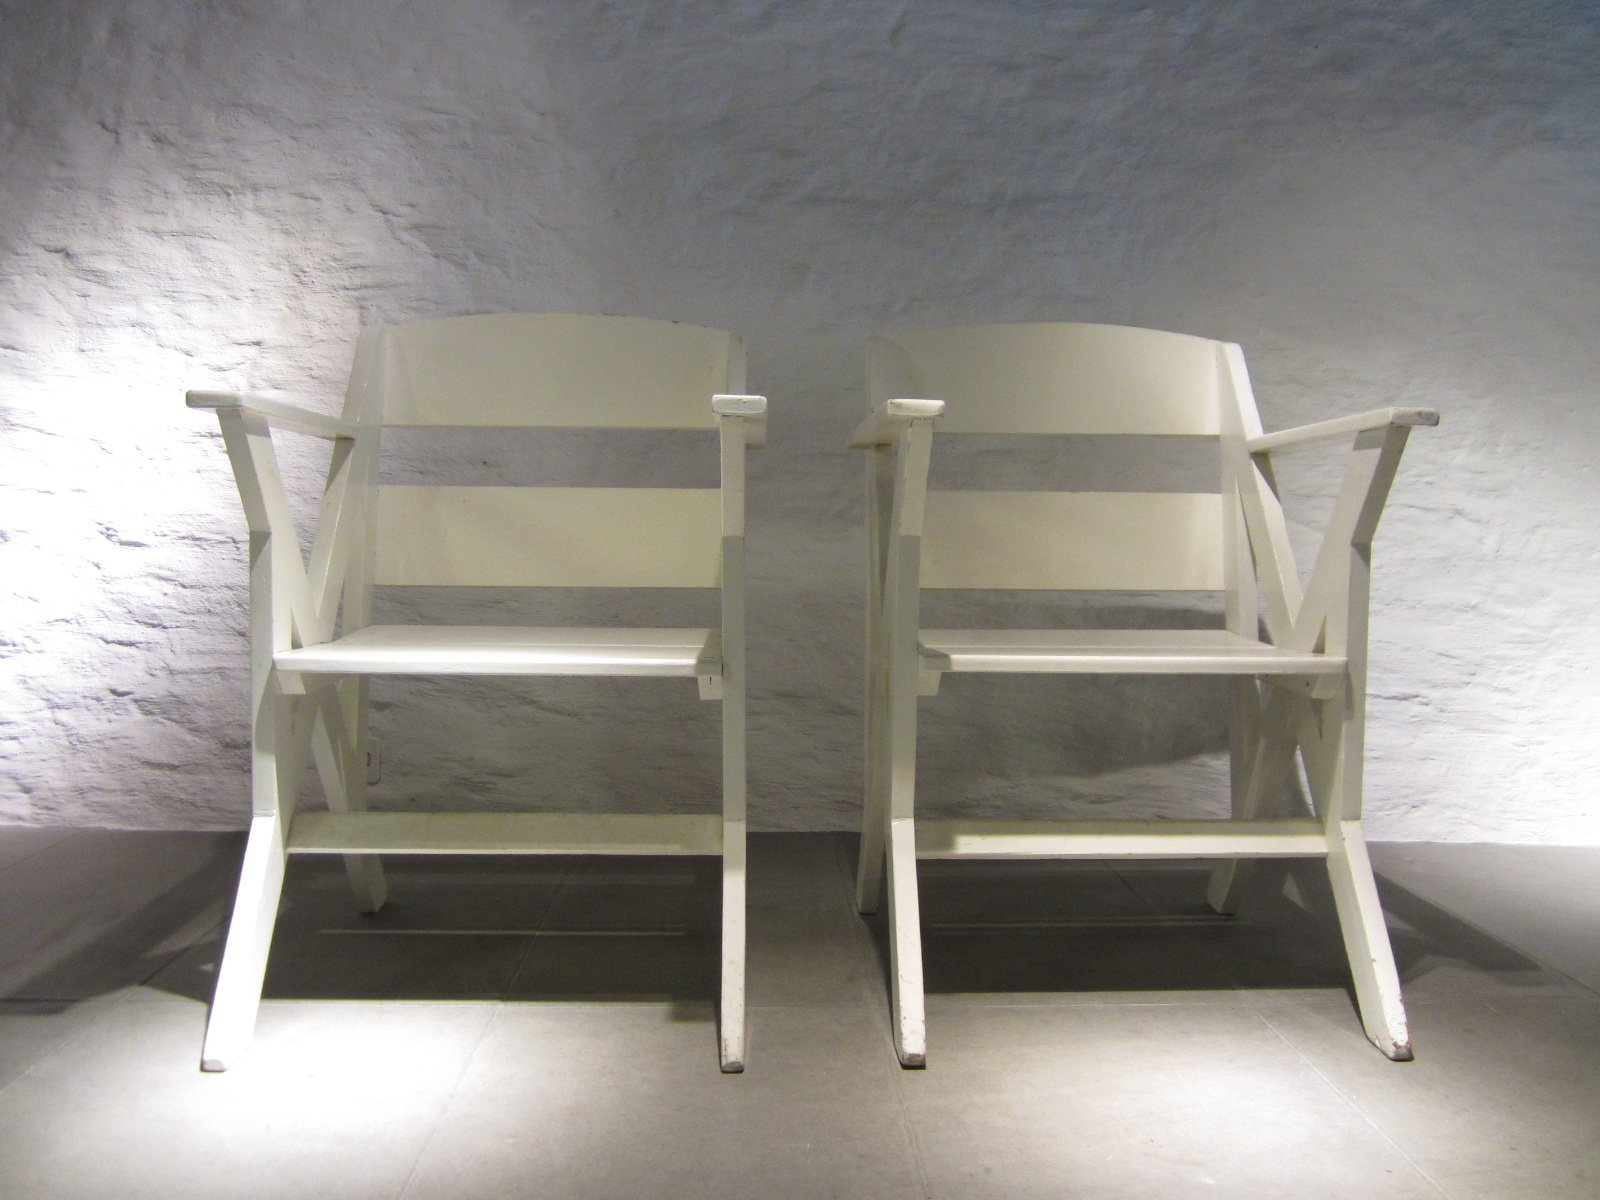 French Veranda Chairs 1940s Set Of 2 For Sale At Pamono